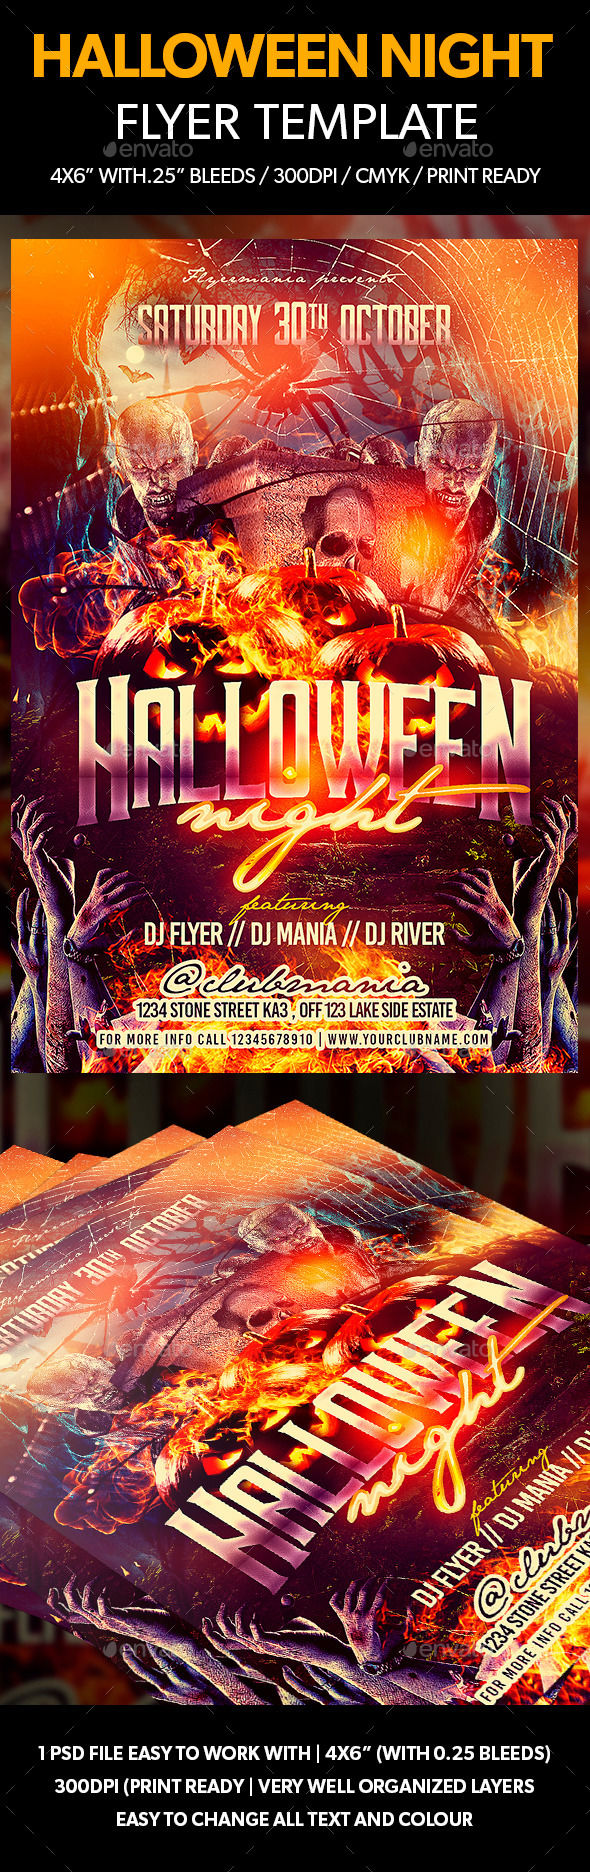 Halloween Night Flyer Template by Flyermania (Halloween party flyer)